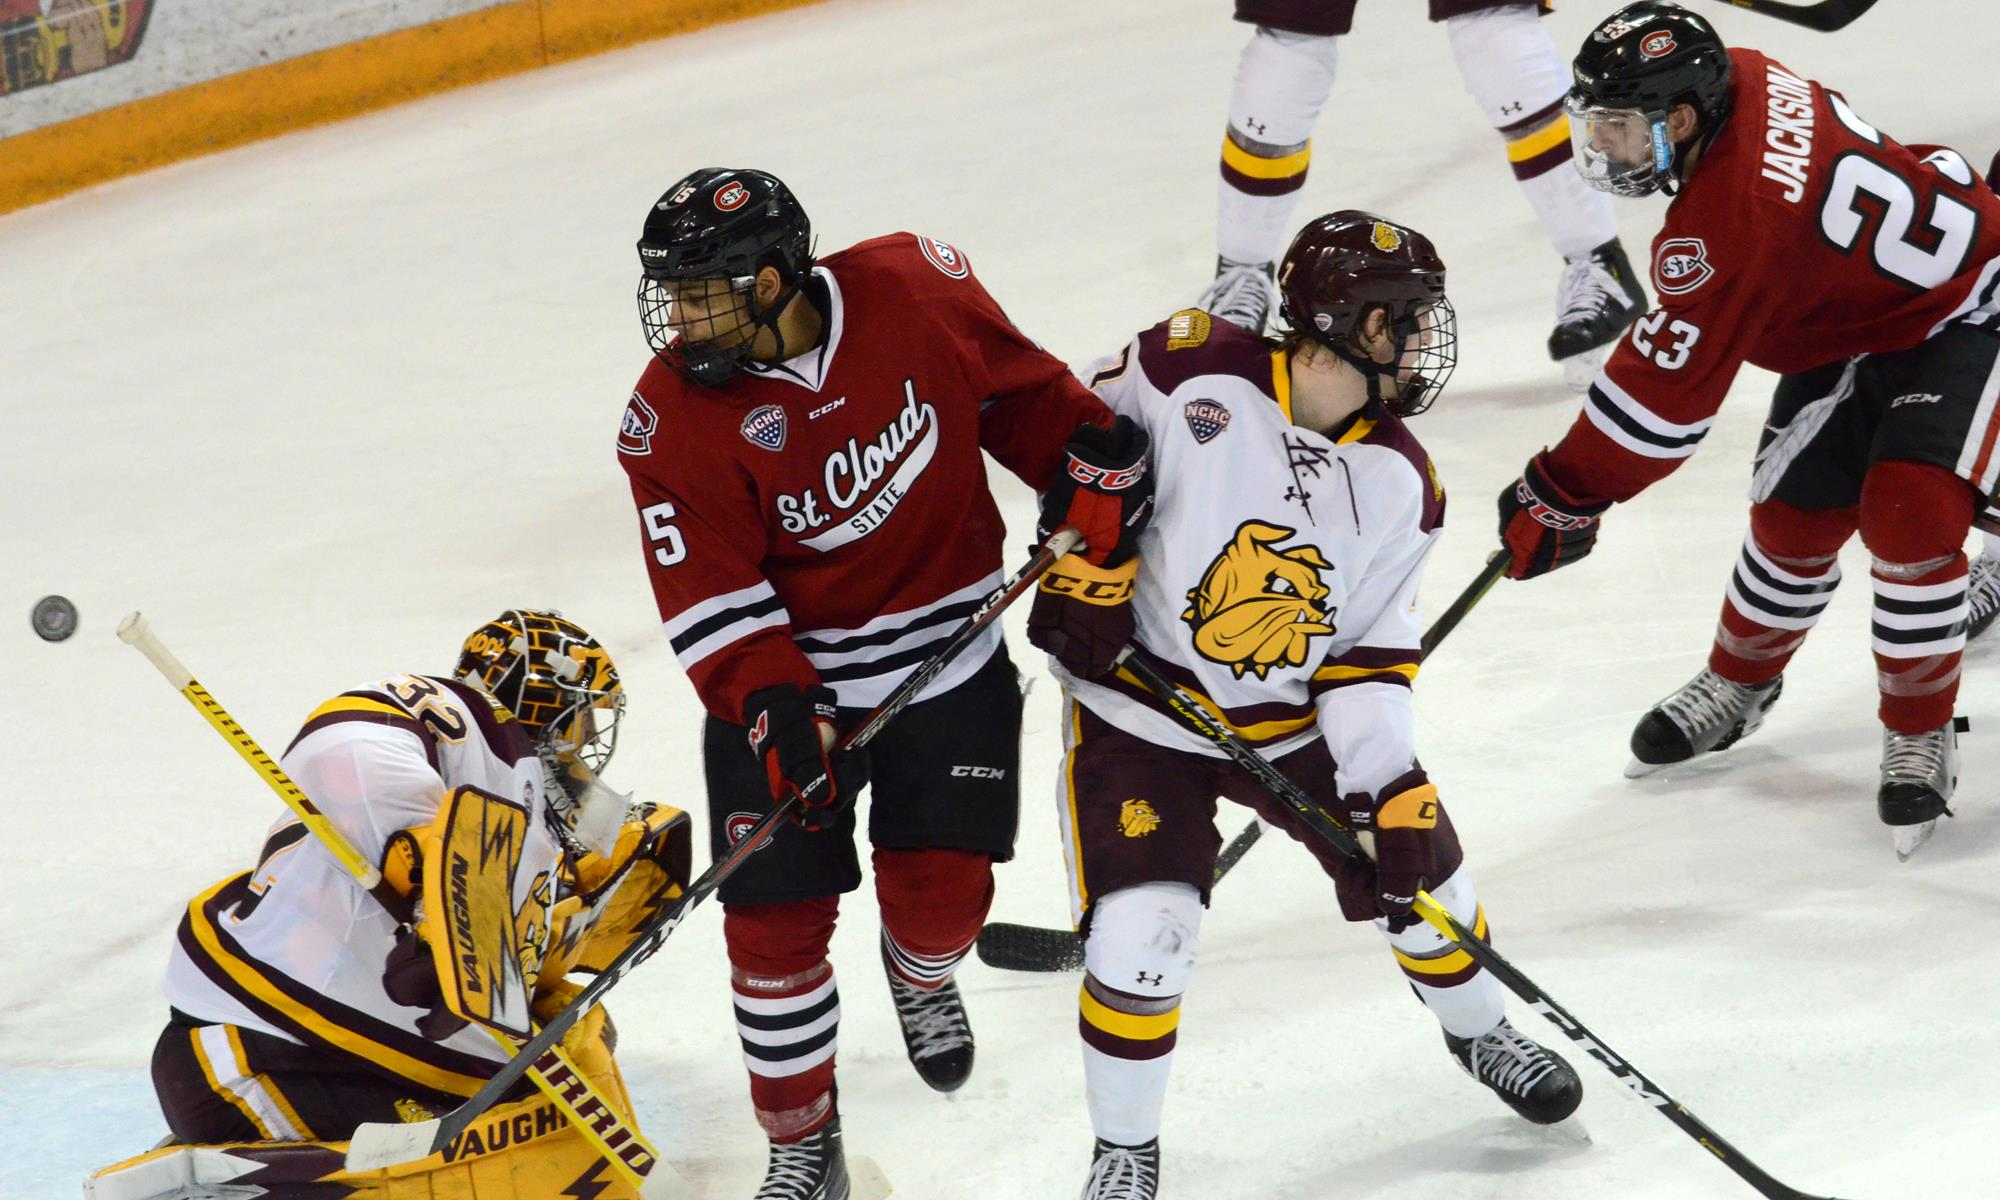 1 St  Cloud State drops close 3-1 match at #5 UMD on Jan  11